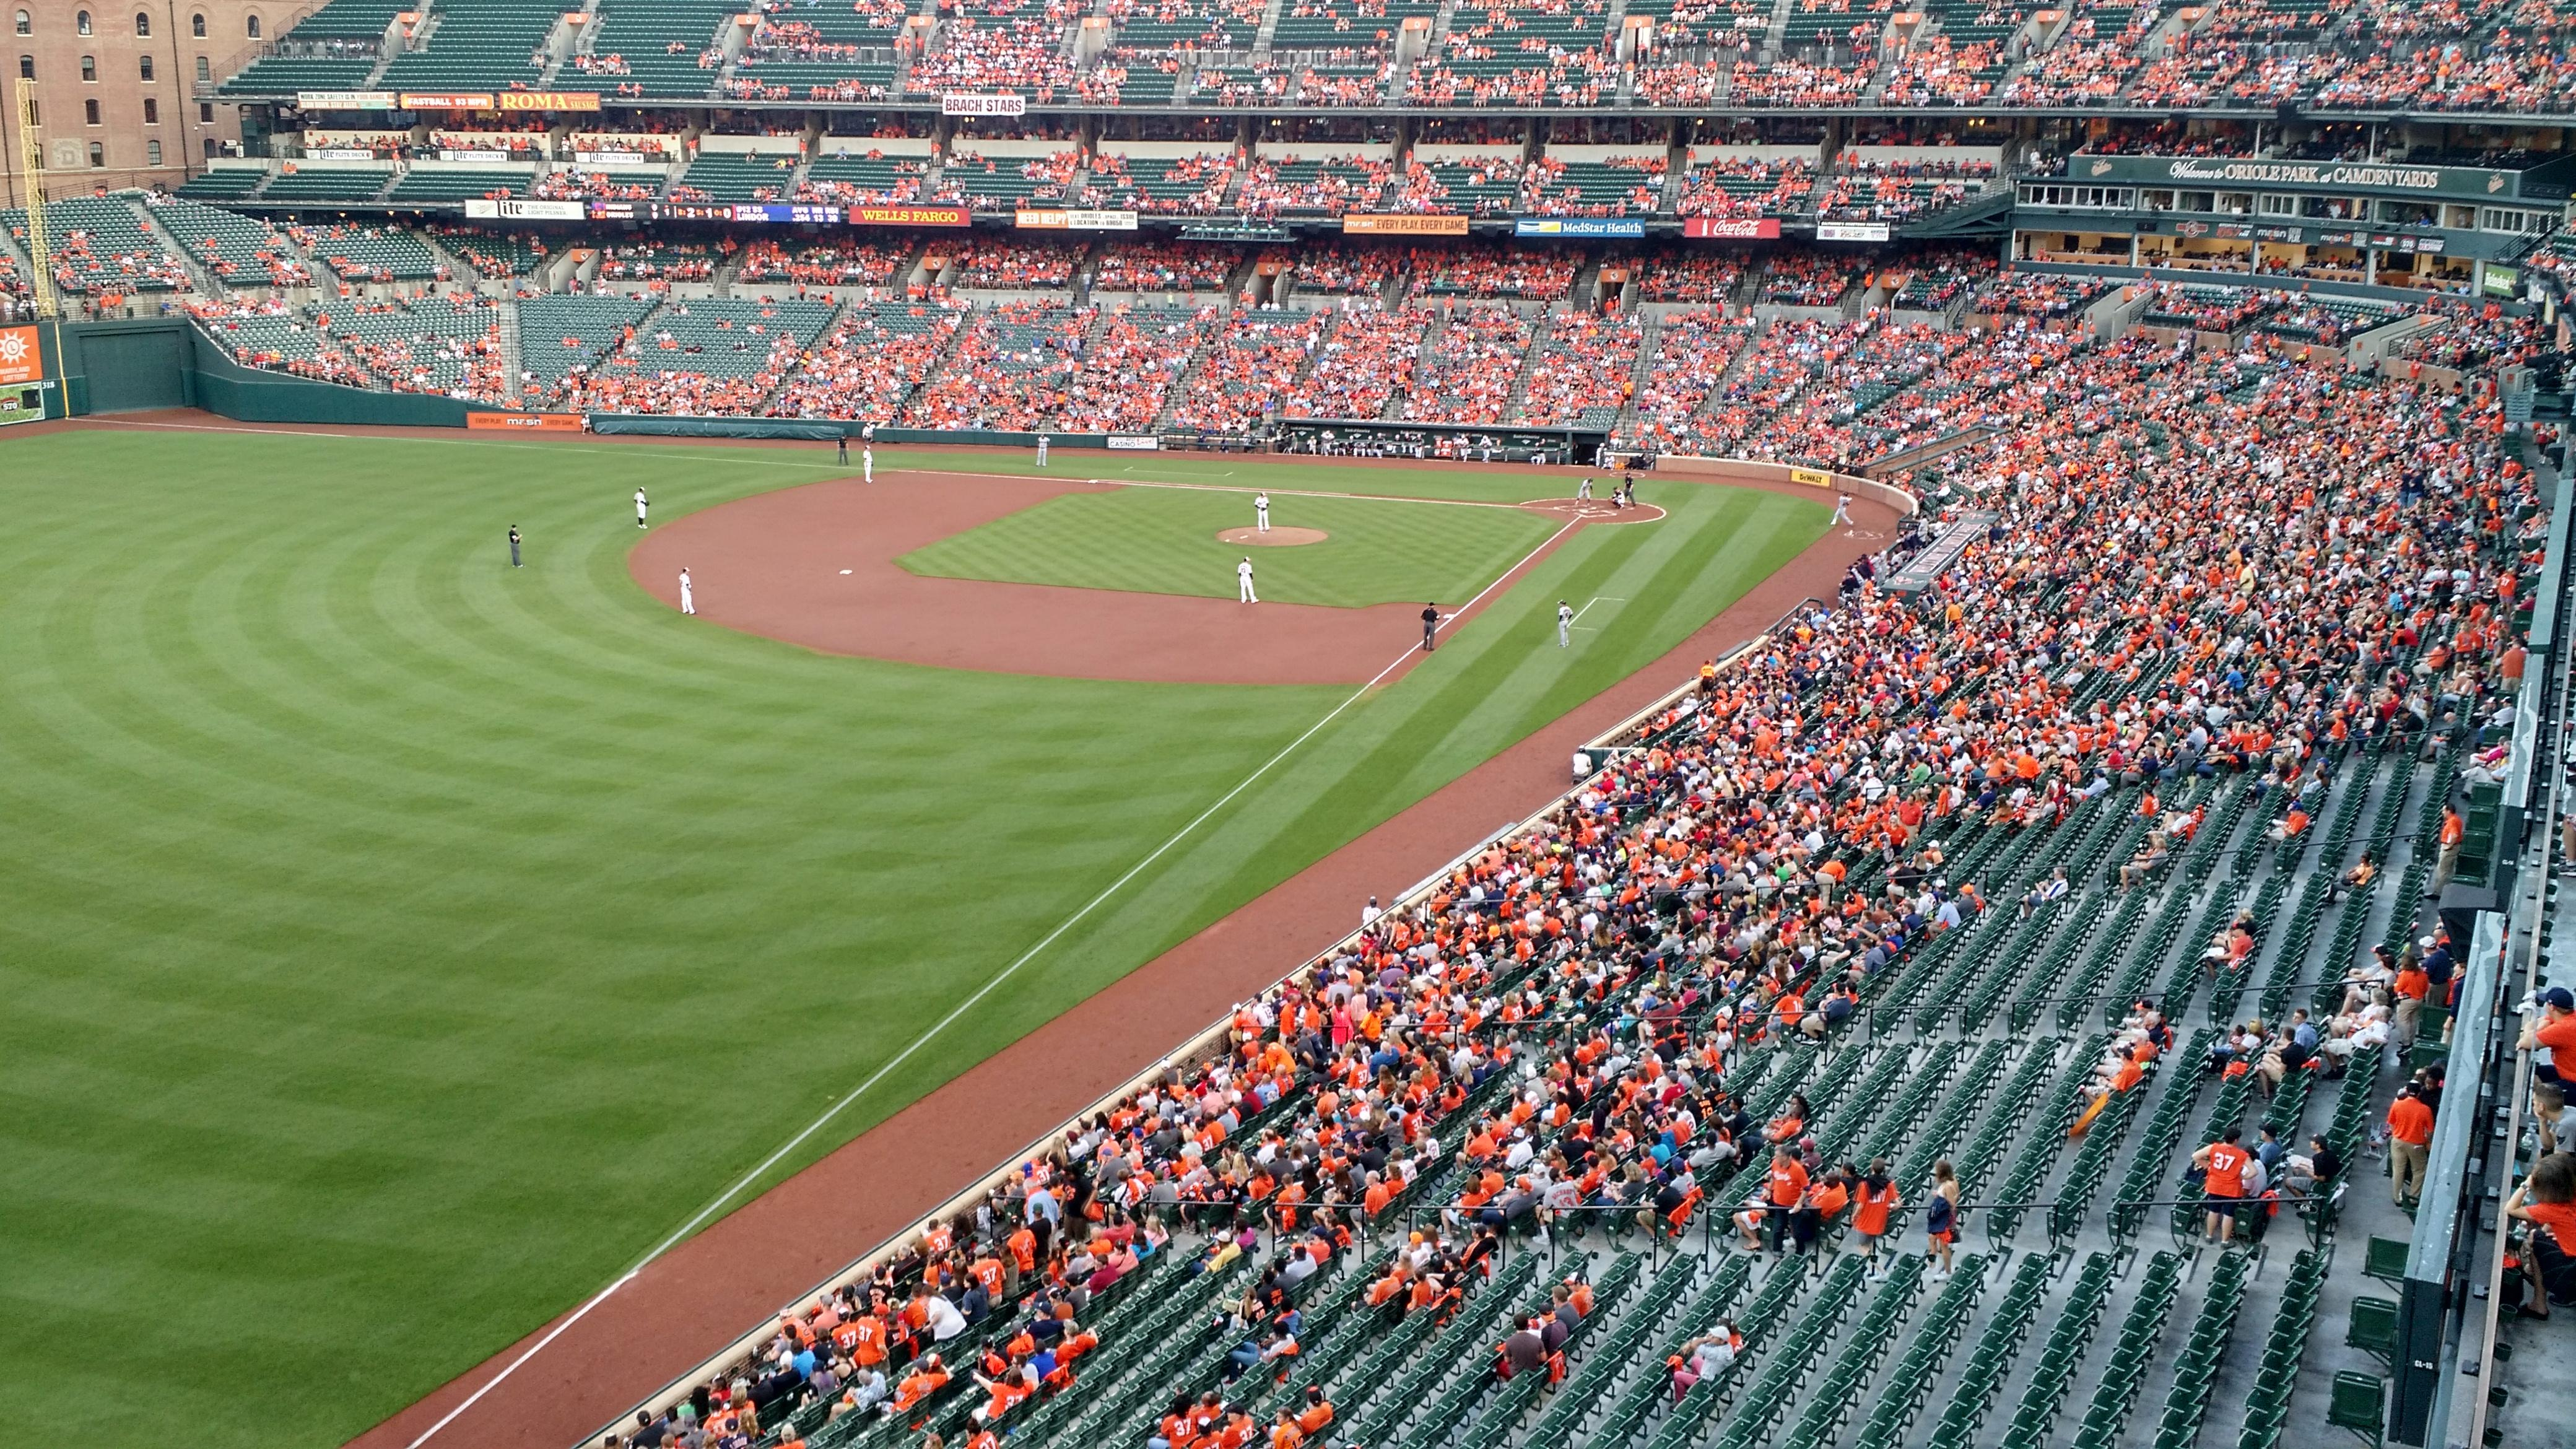 Oriole Park at Camden Yards Section 376 Row 1 Seat 1